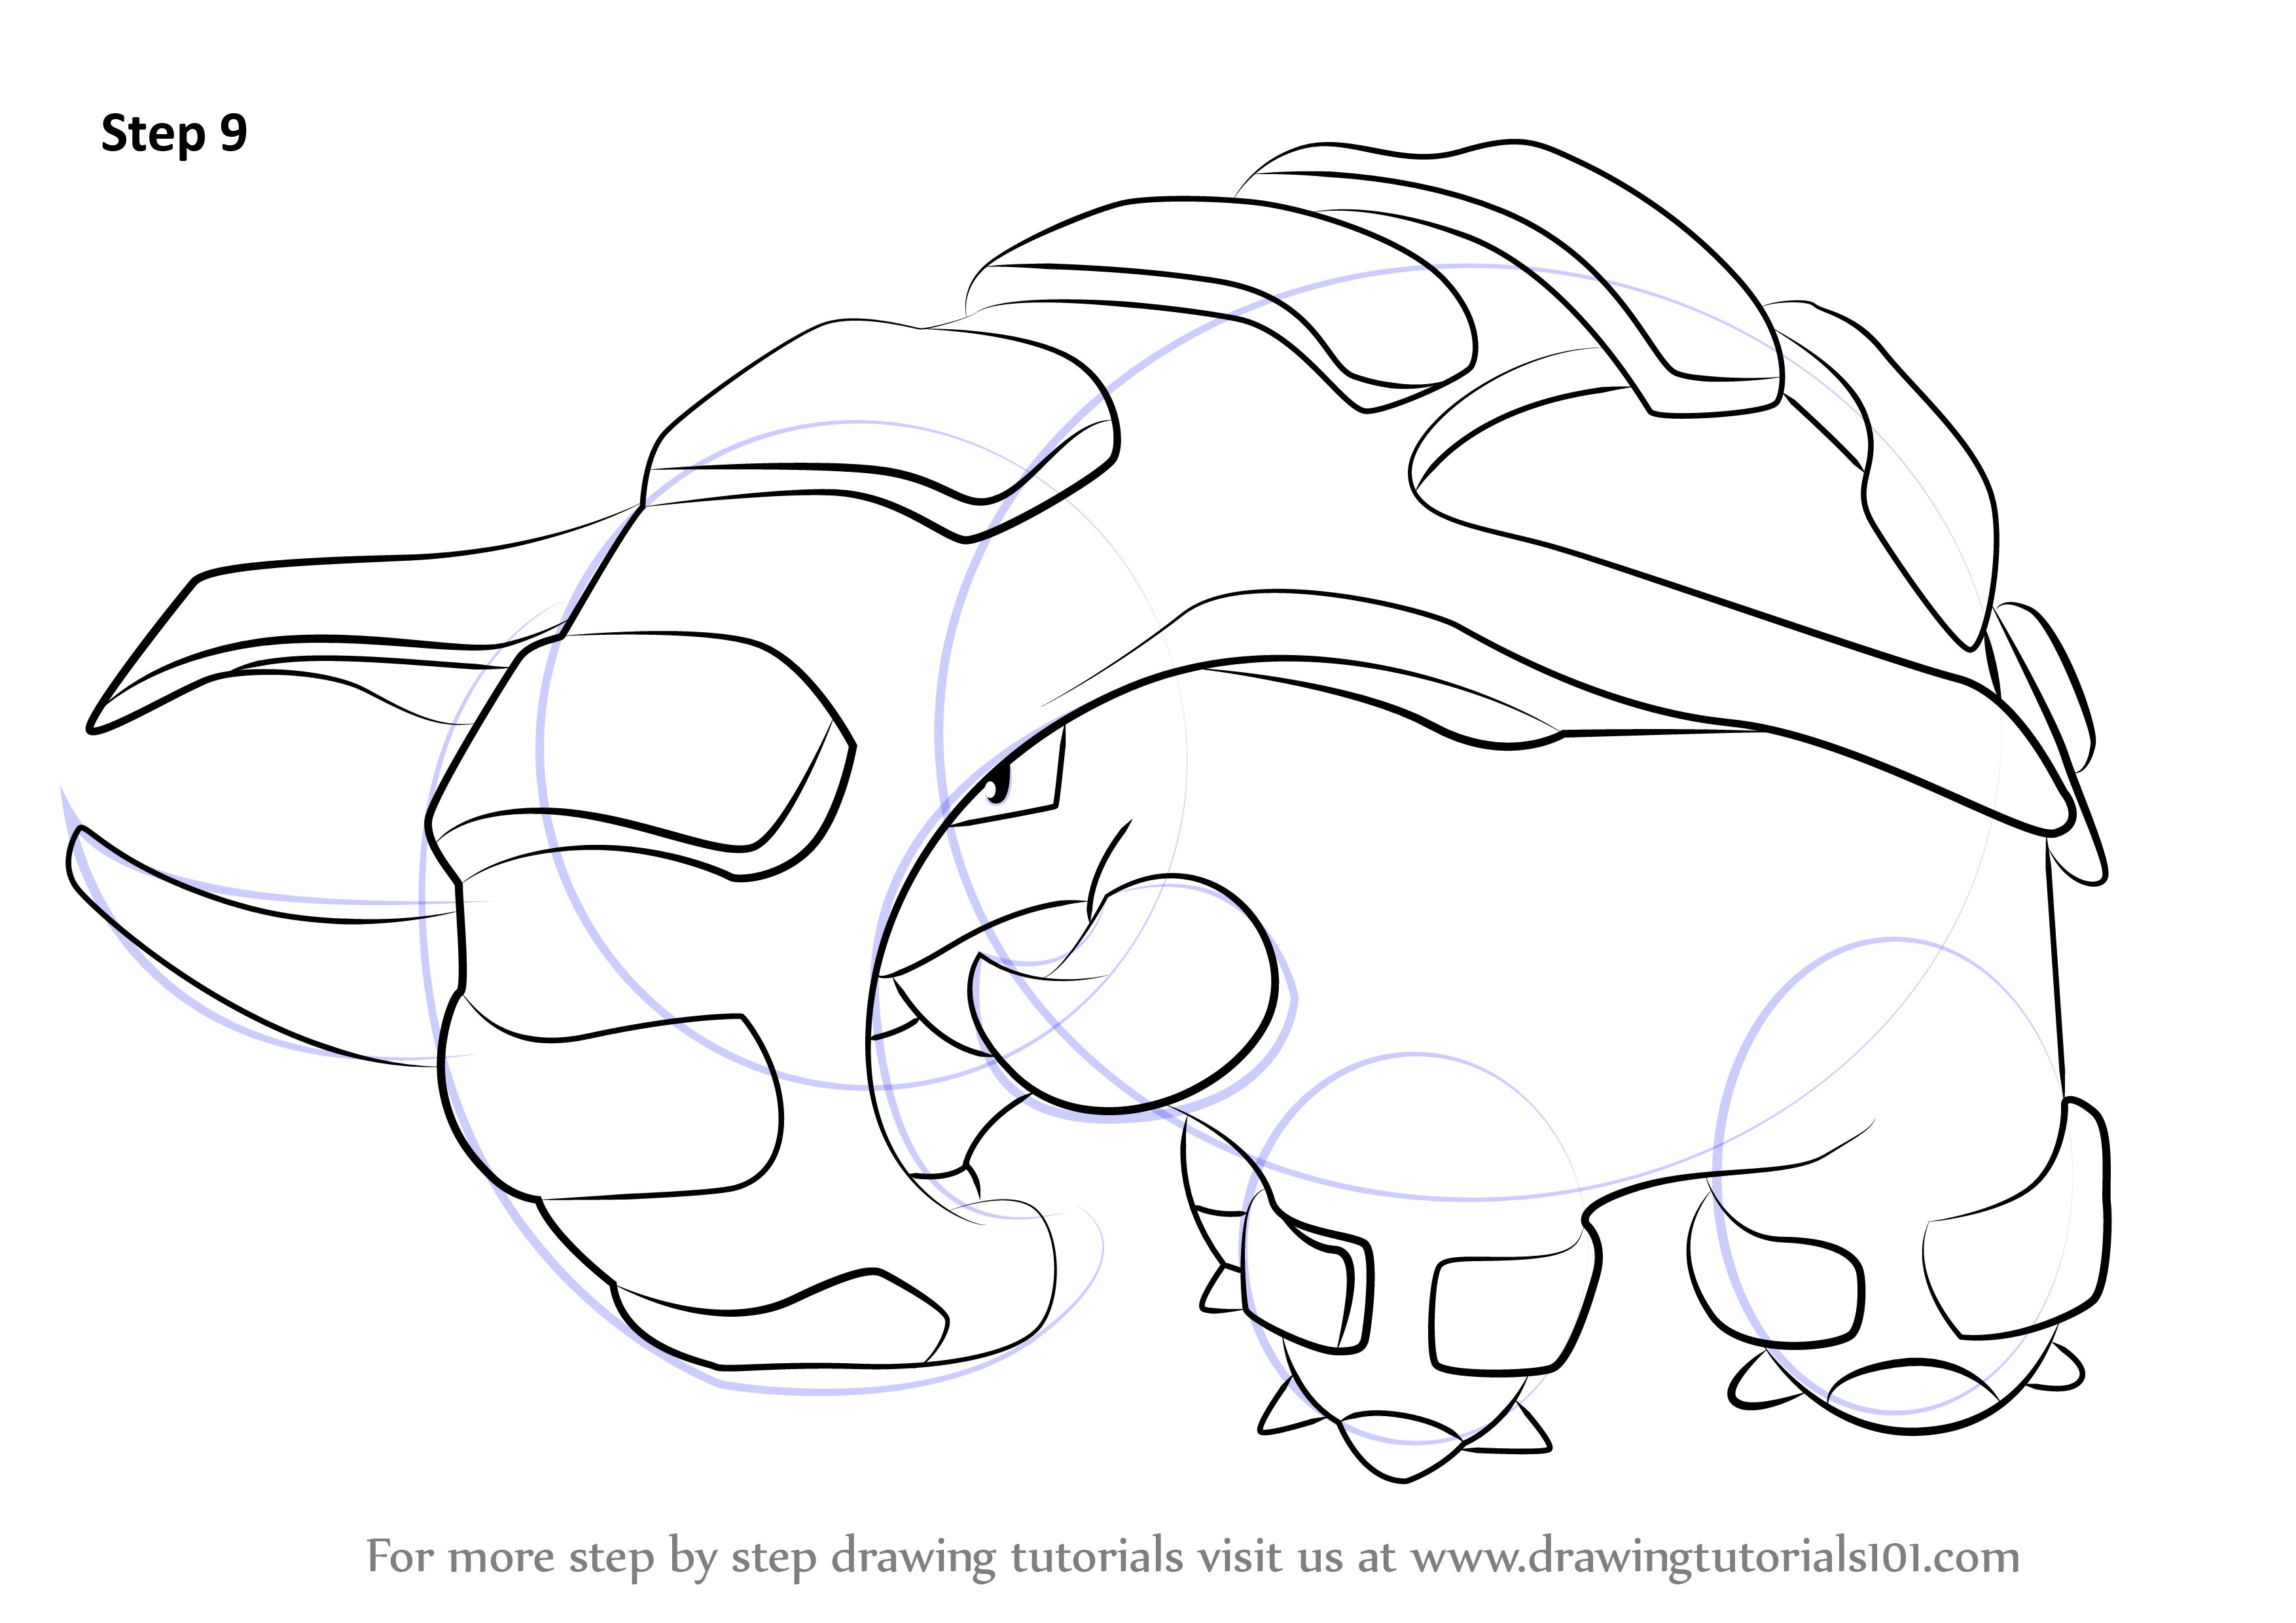 Learn How To Draw Donphan From Pokemon (Pokemon) Step By